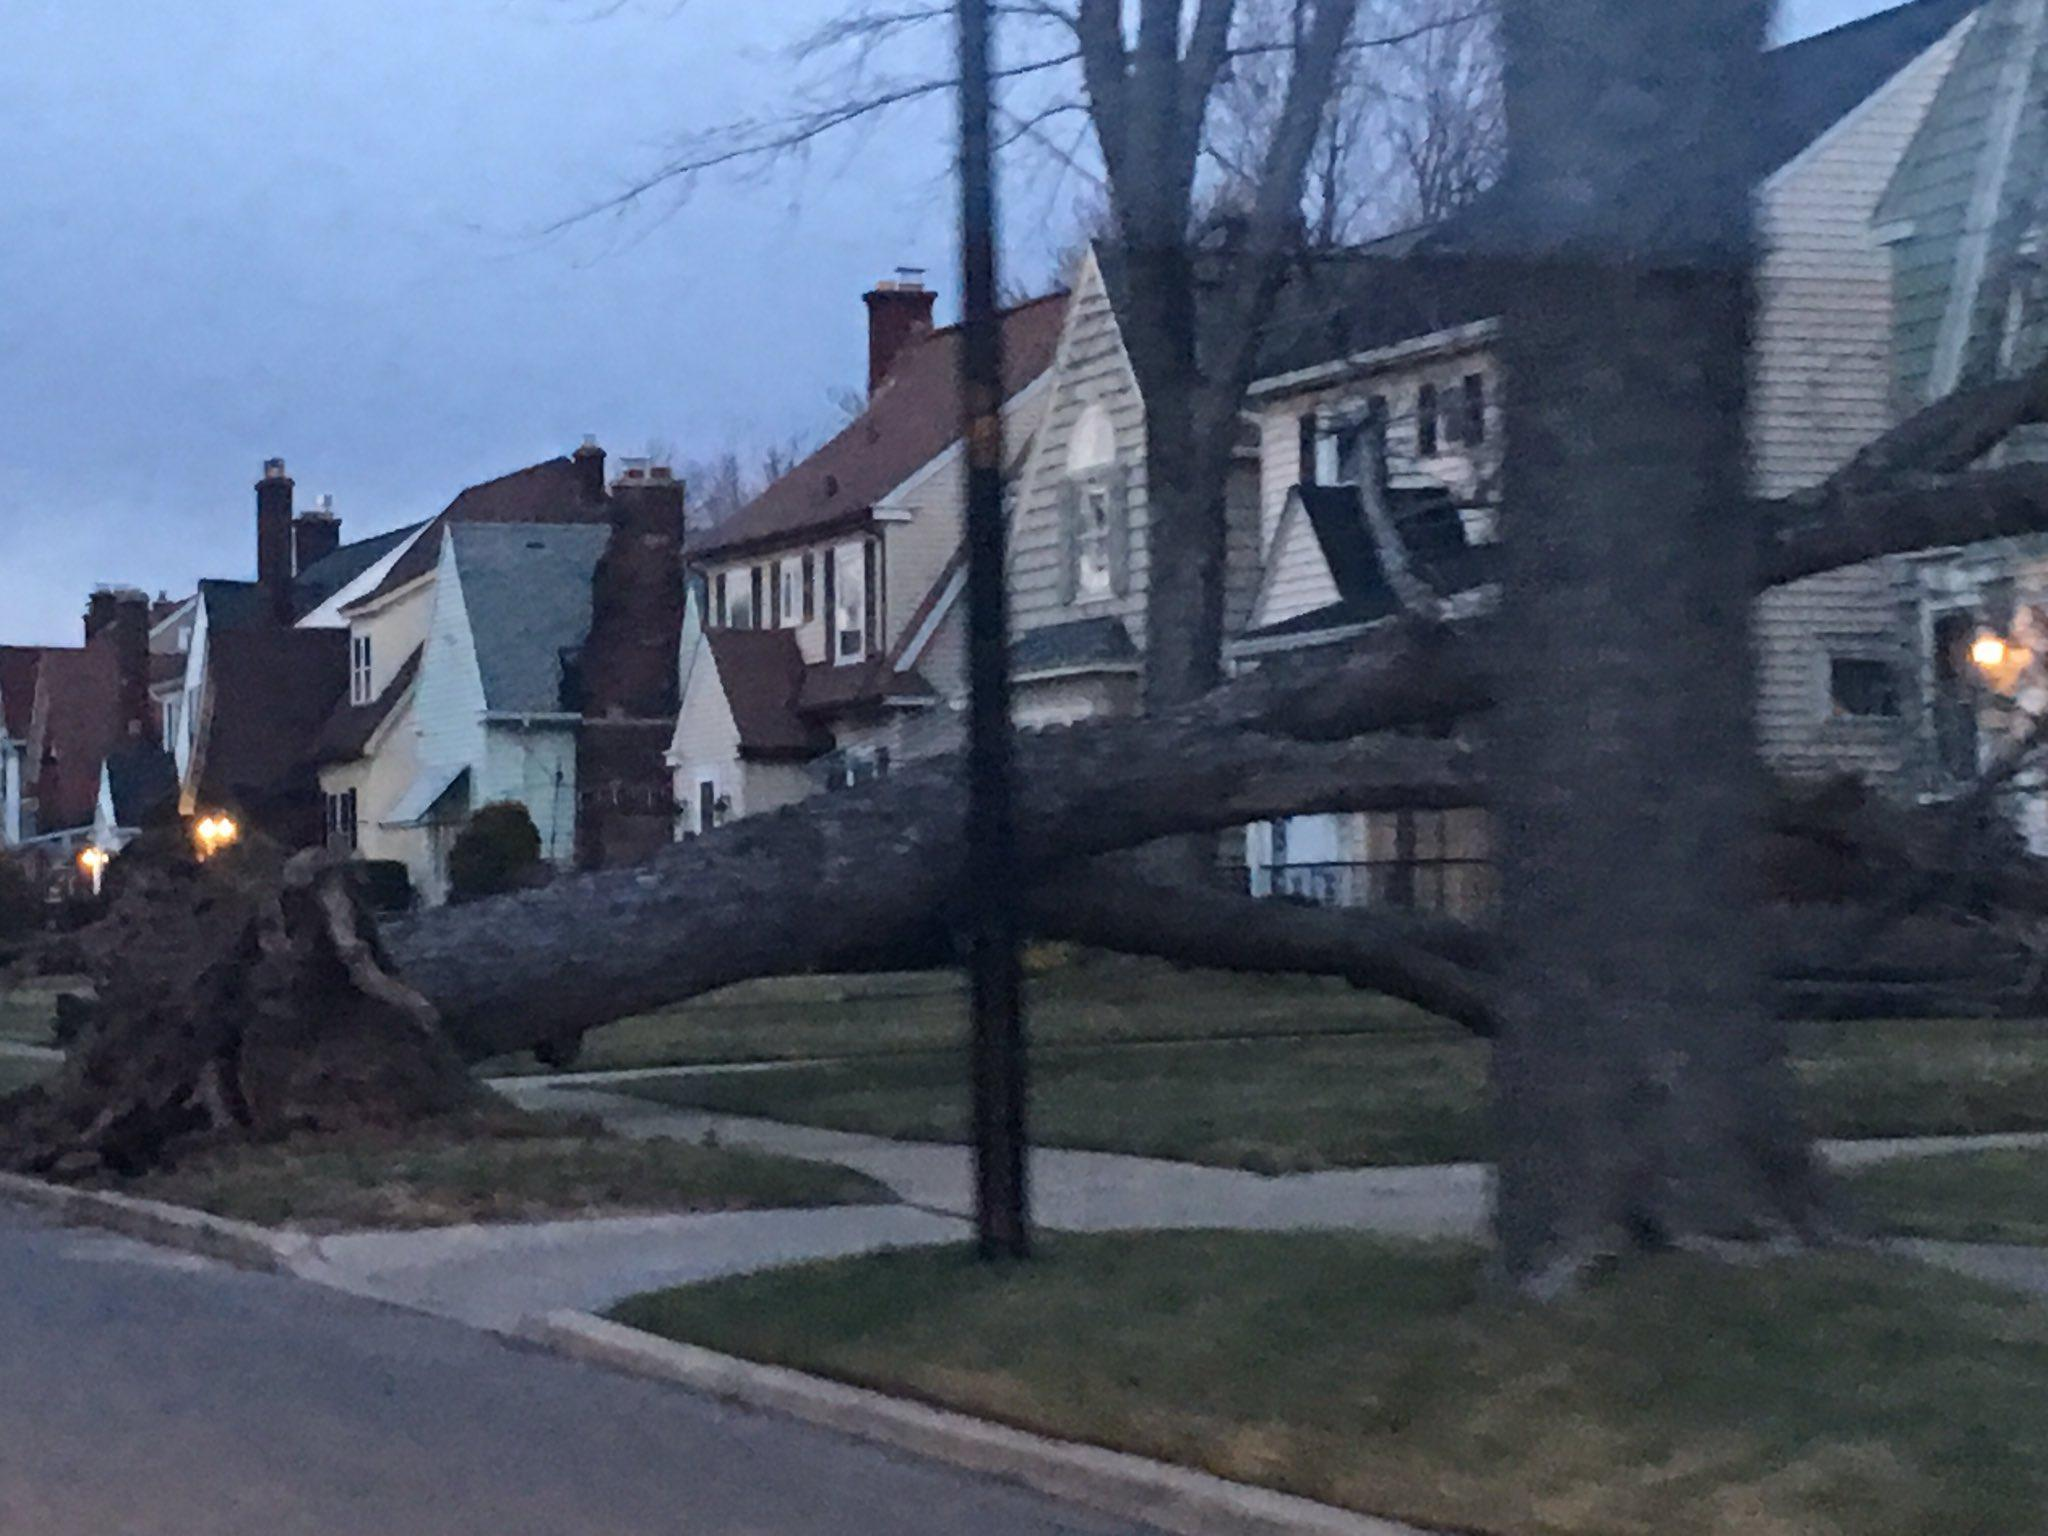 Tree damage in Kenmore from past stormy weather